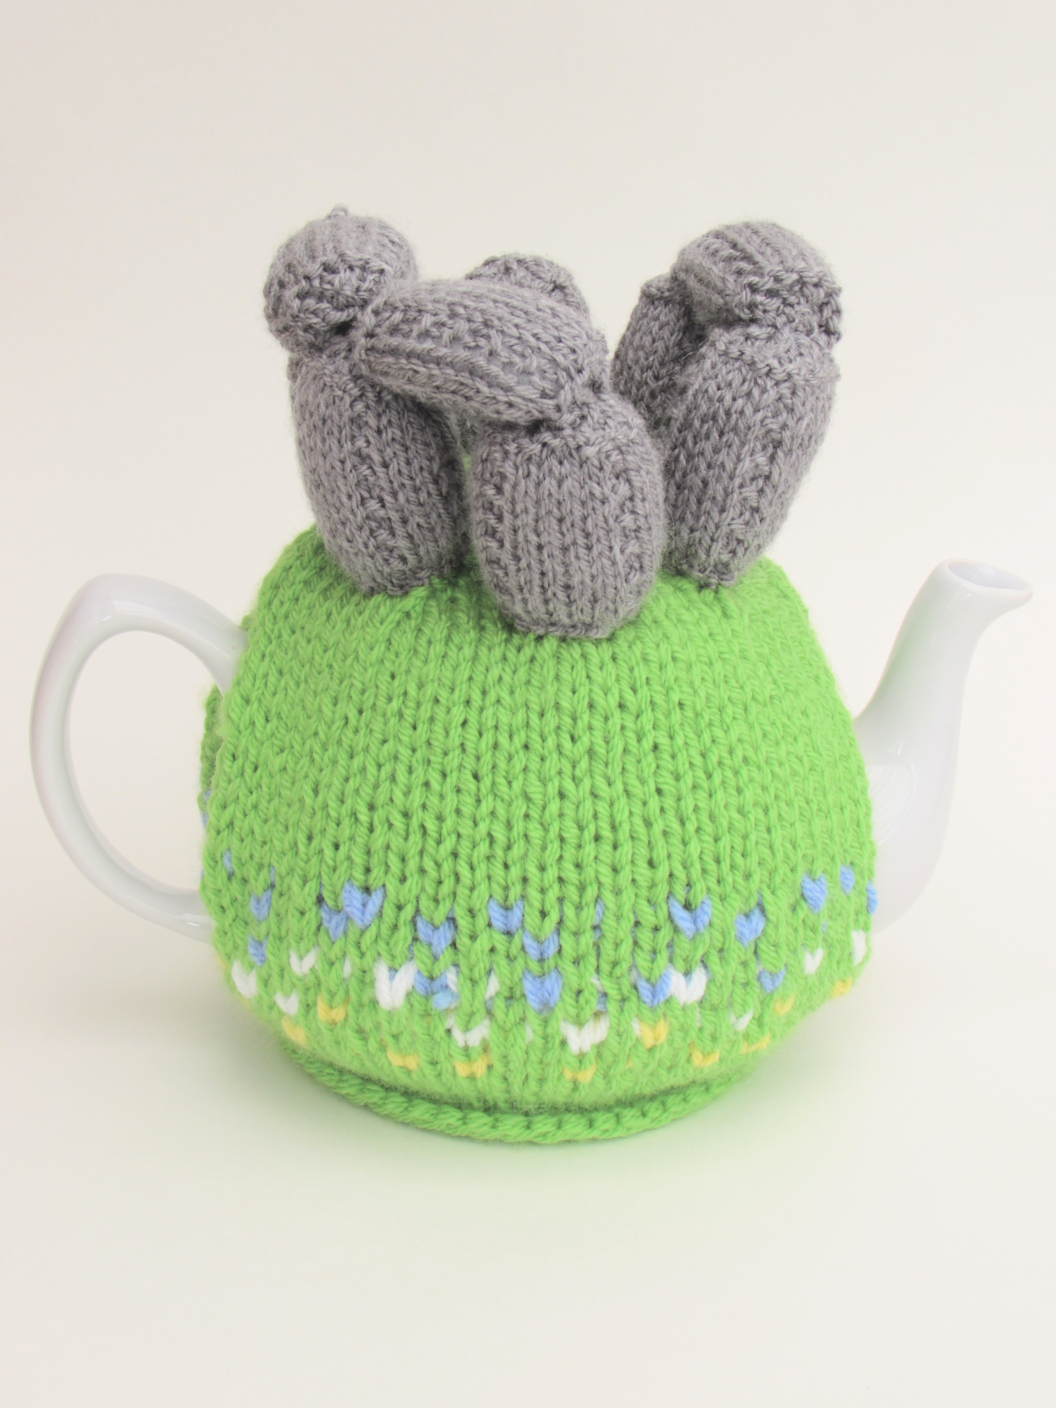 Summer Solstice tea cosy